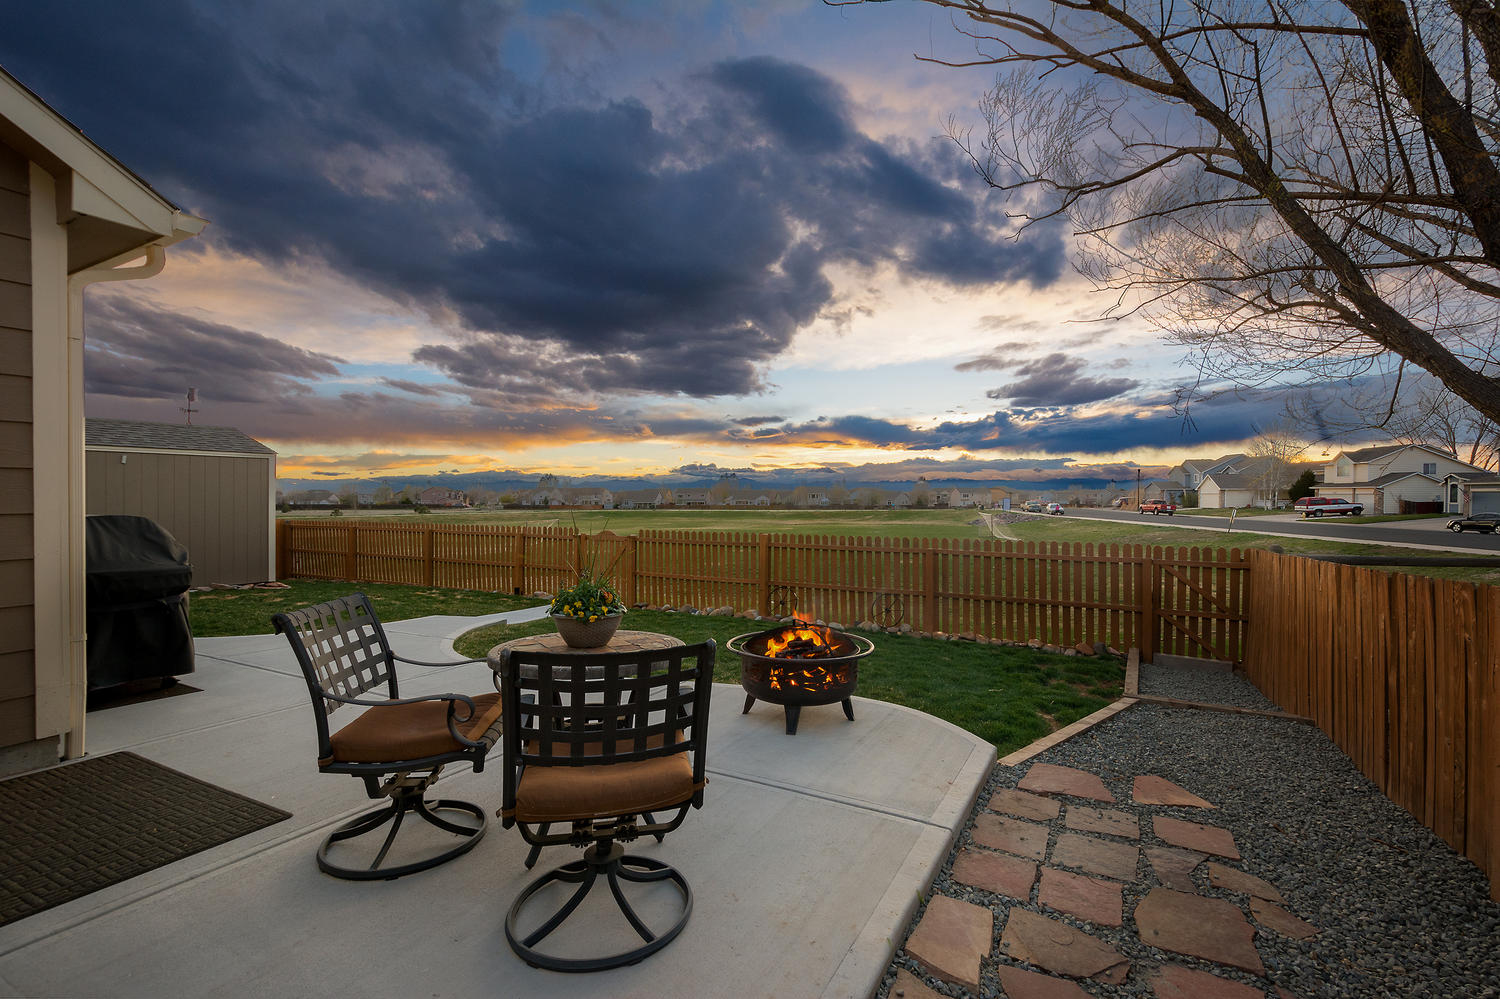 Home for Sale at 711 S 21st Ct, Brighton, CO 80601 listed by Jason Peck 720-446-6301